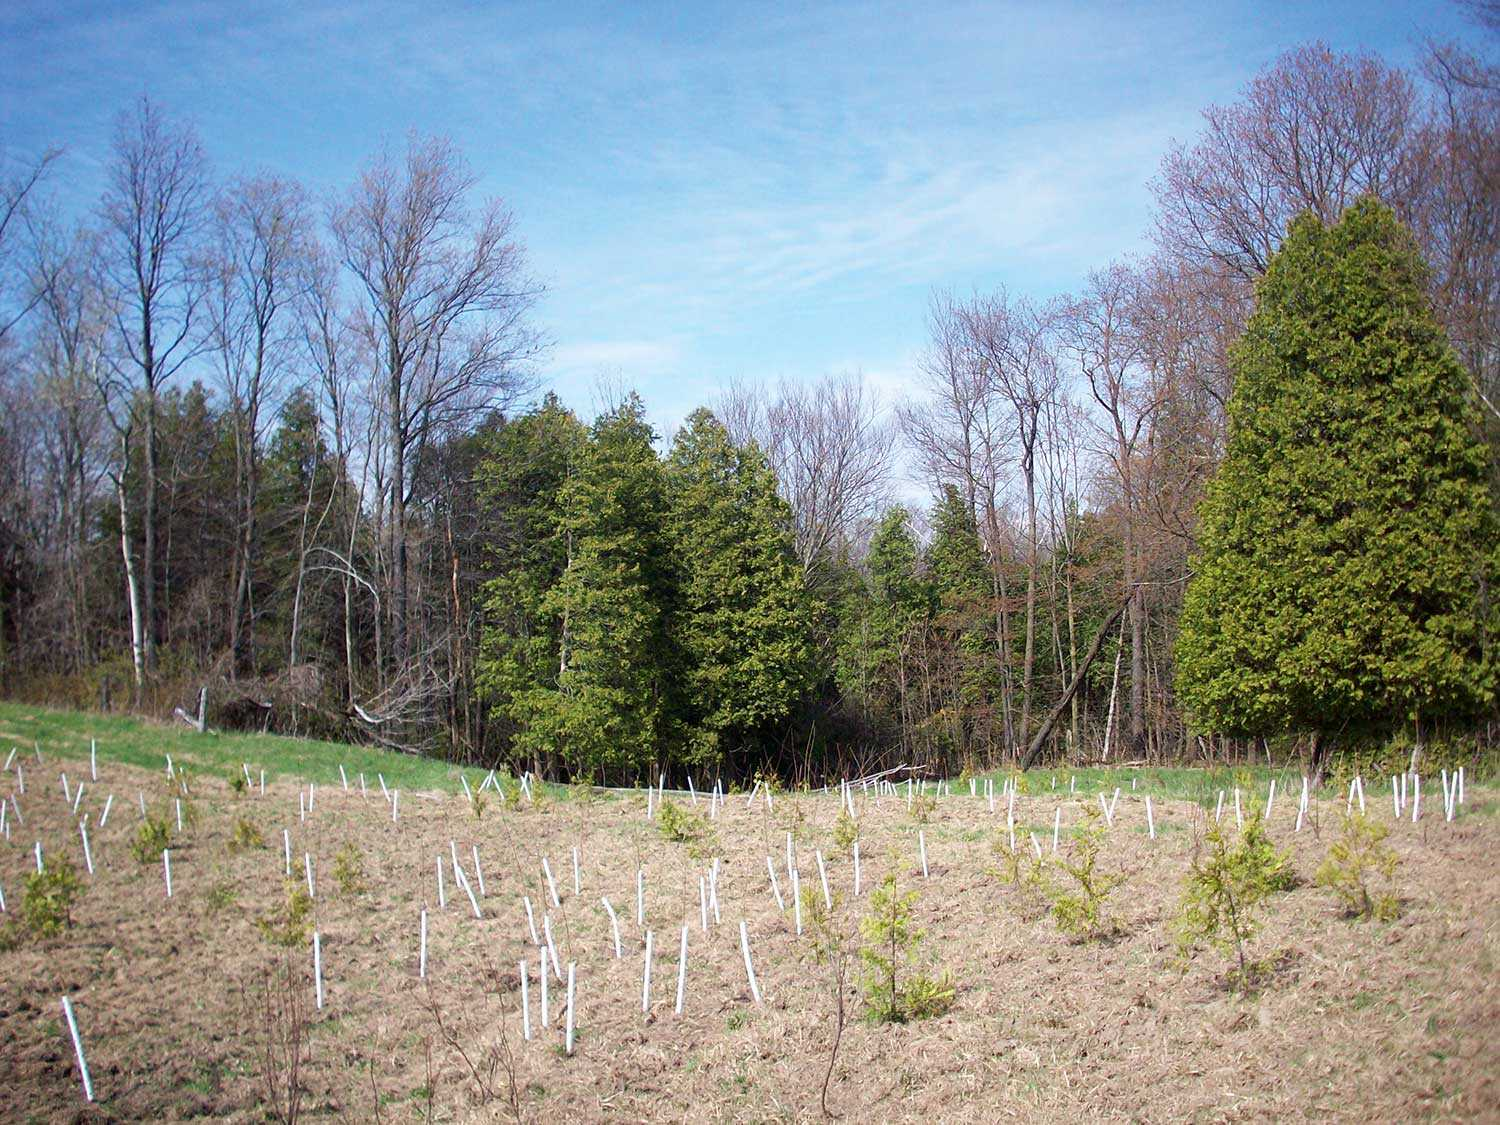 Planted area of lowland species expanding existing cover adjacent to the former pasture on the Blair property (Photo: John Stille).